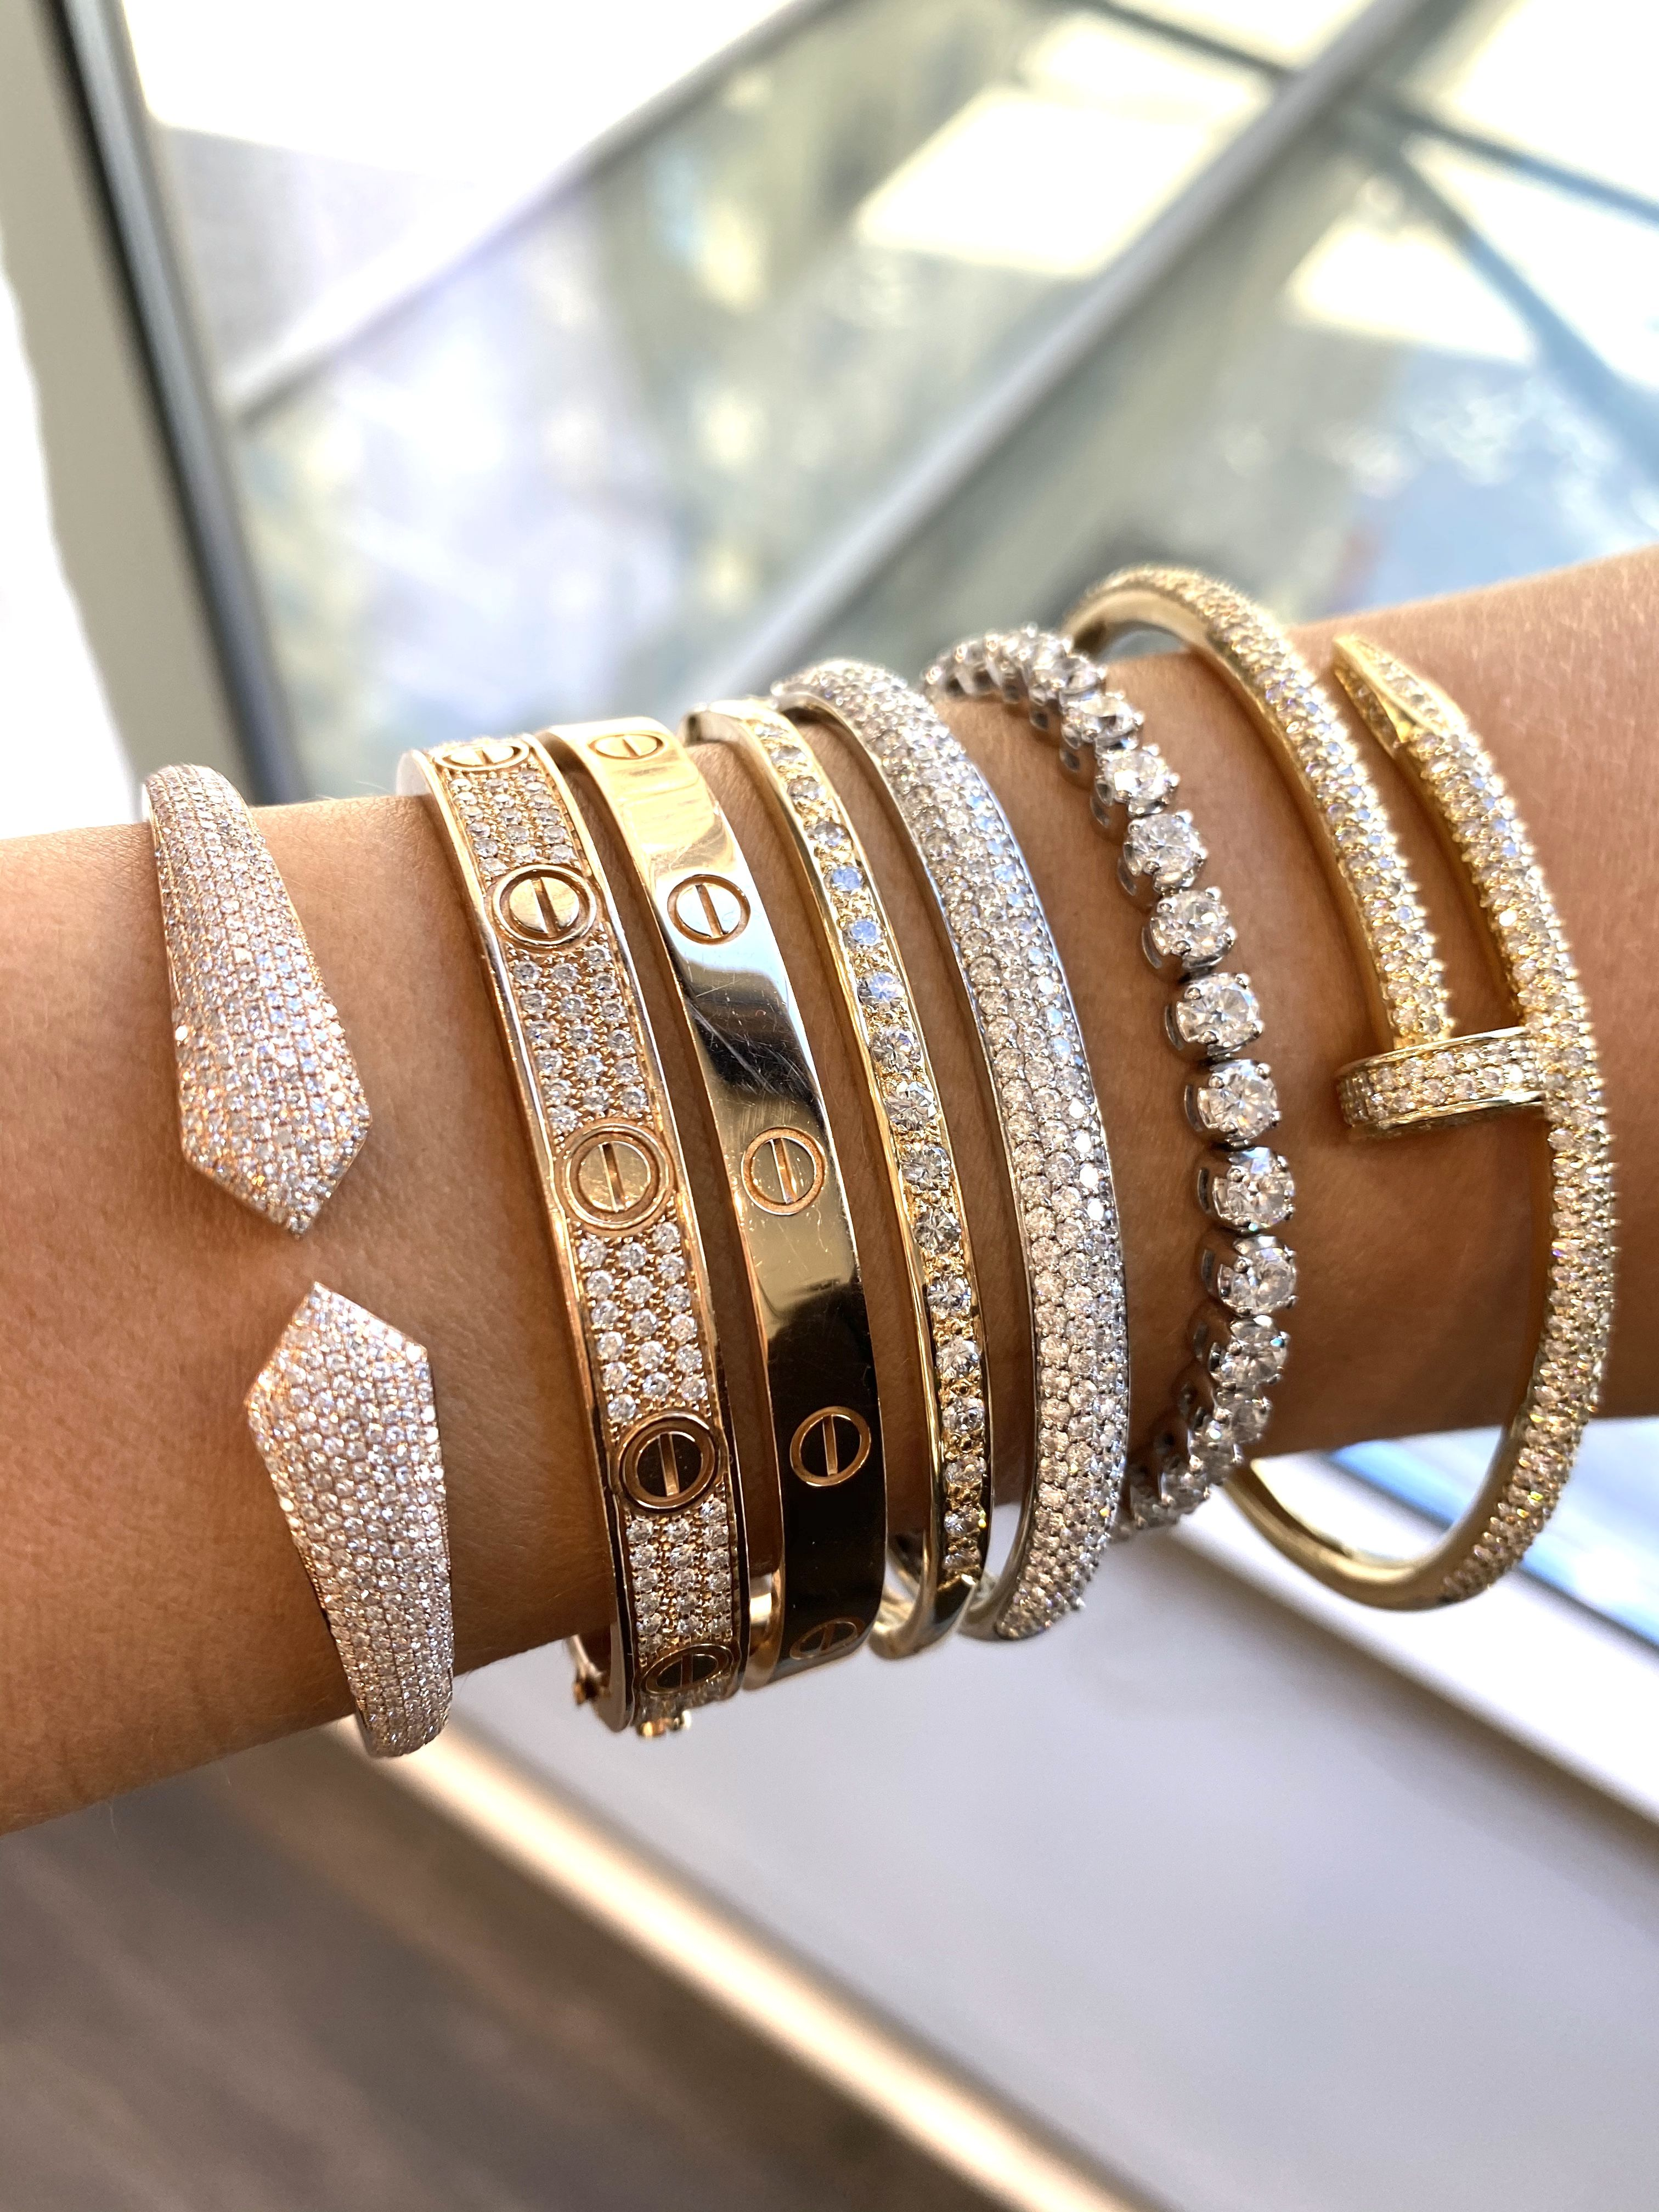 Diamond bracelets for your arm parties! Stylish and fun